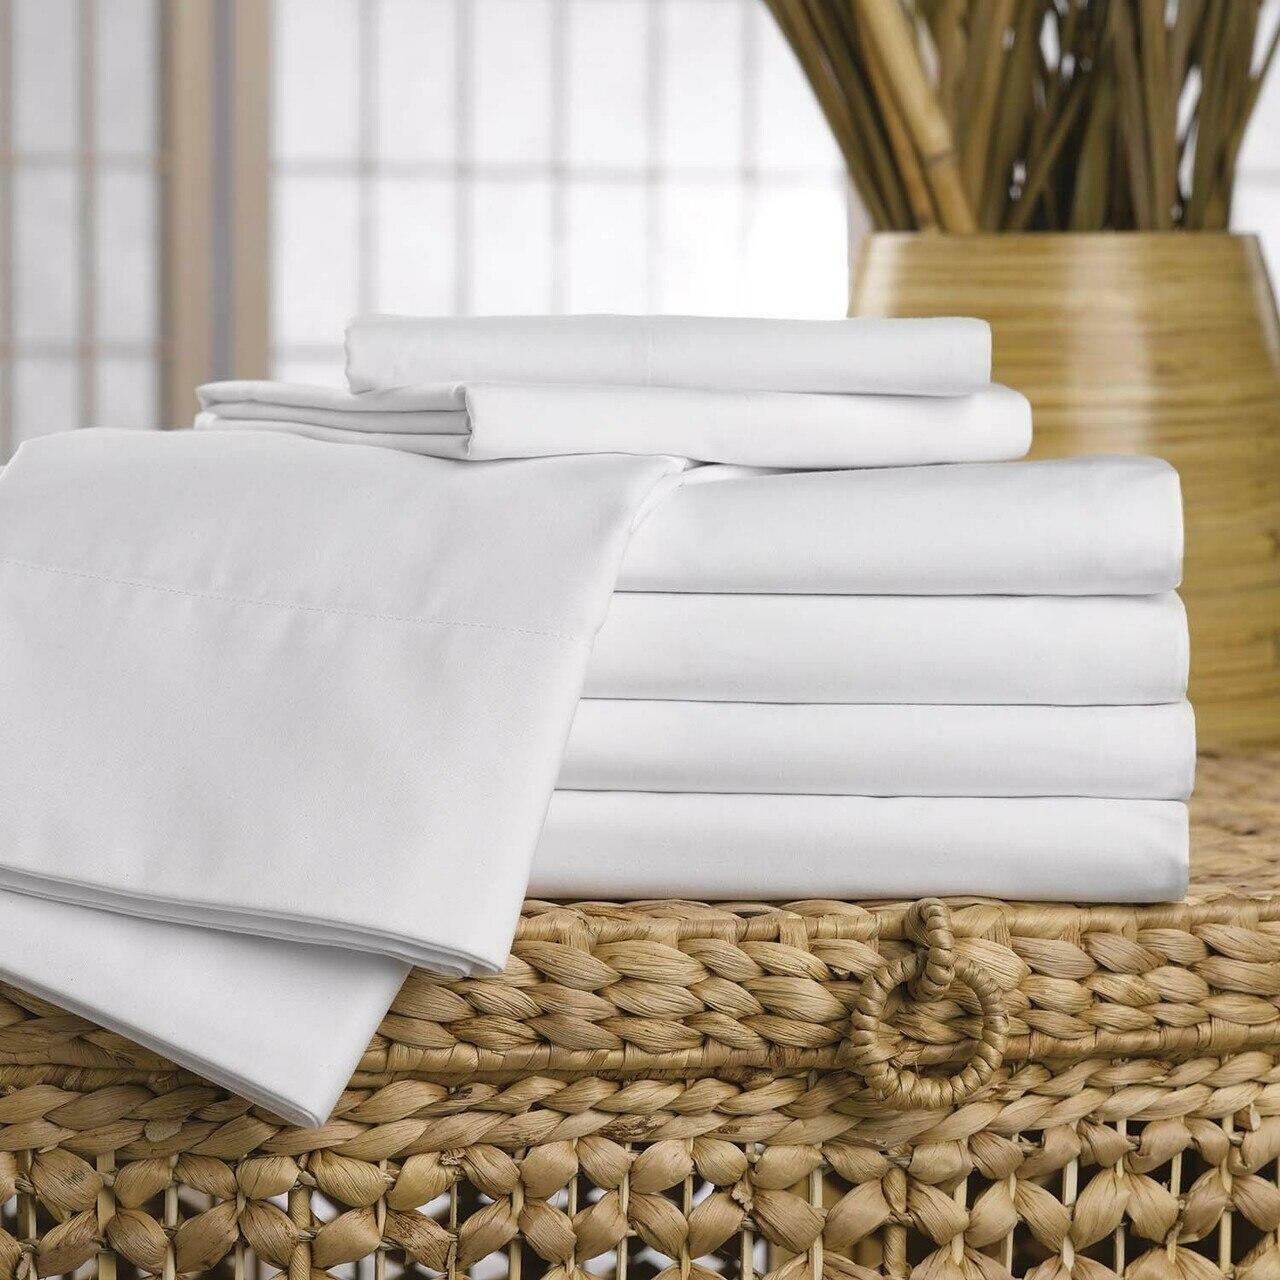 WestPoint/Martex MARTEX ULTRA TOUCH MICROFIBER SHEETS - ALL SIZES